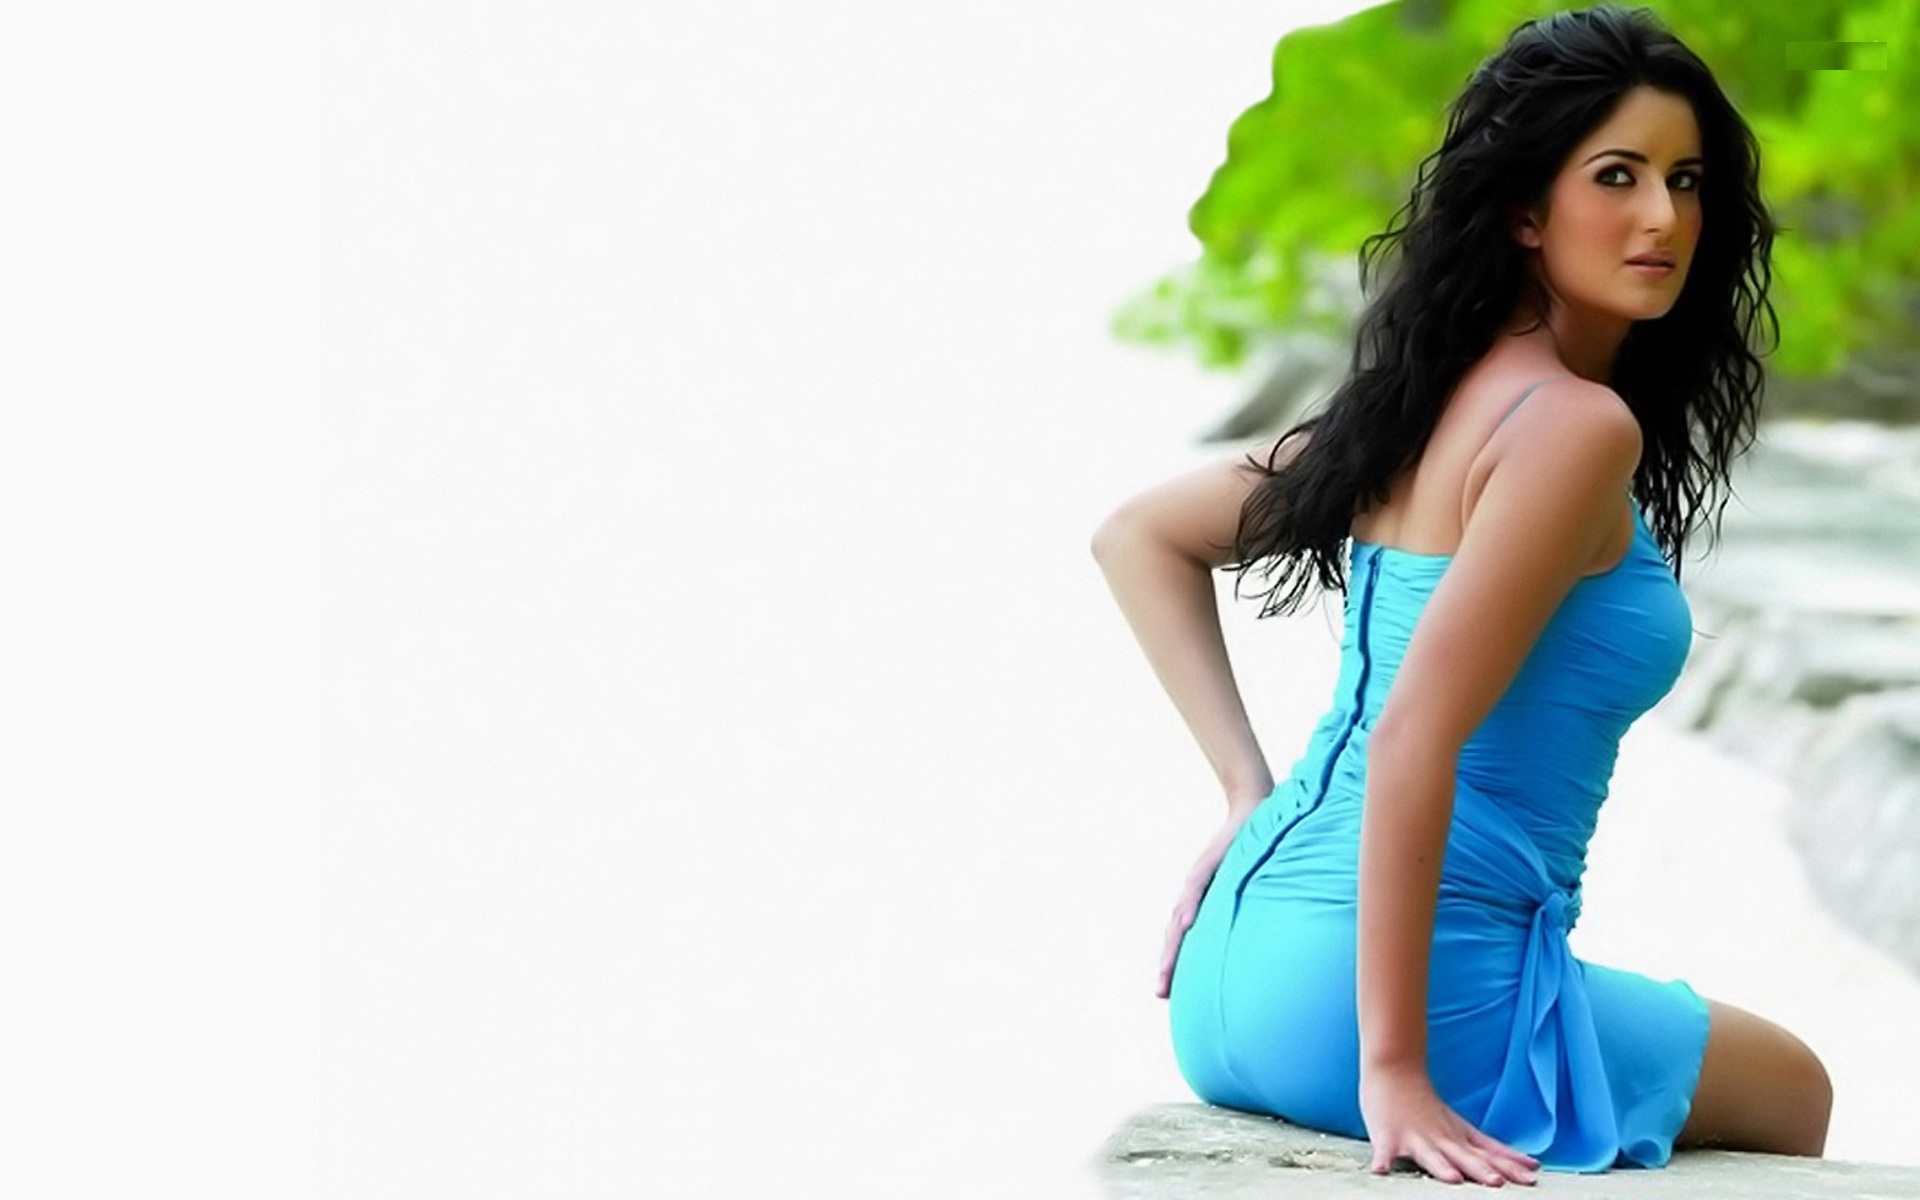 Katrina Hot Wallpaper Katrina Kaif Hot Photos Full Hd 1920x1200 Download Hd Wallpaper Wallpapertip